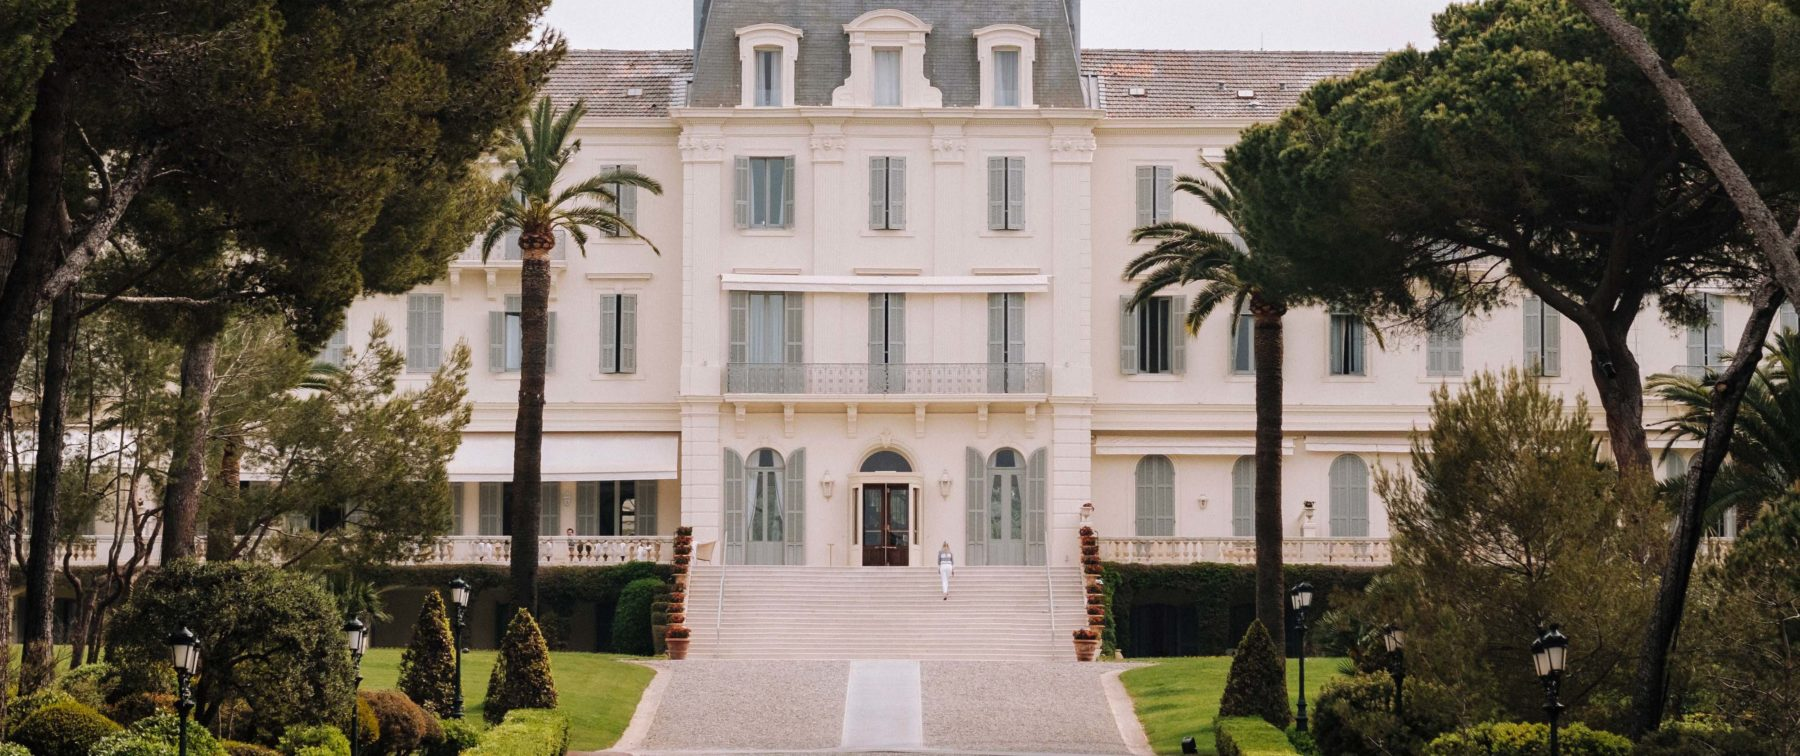 Hotel du Cap Eden Roc (Oetker Collection)